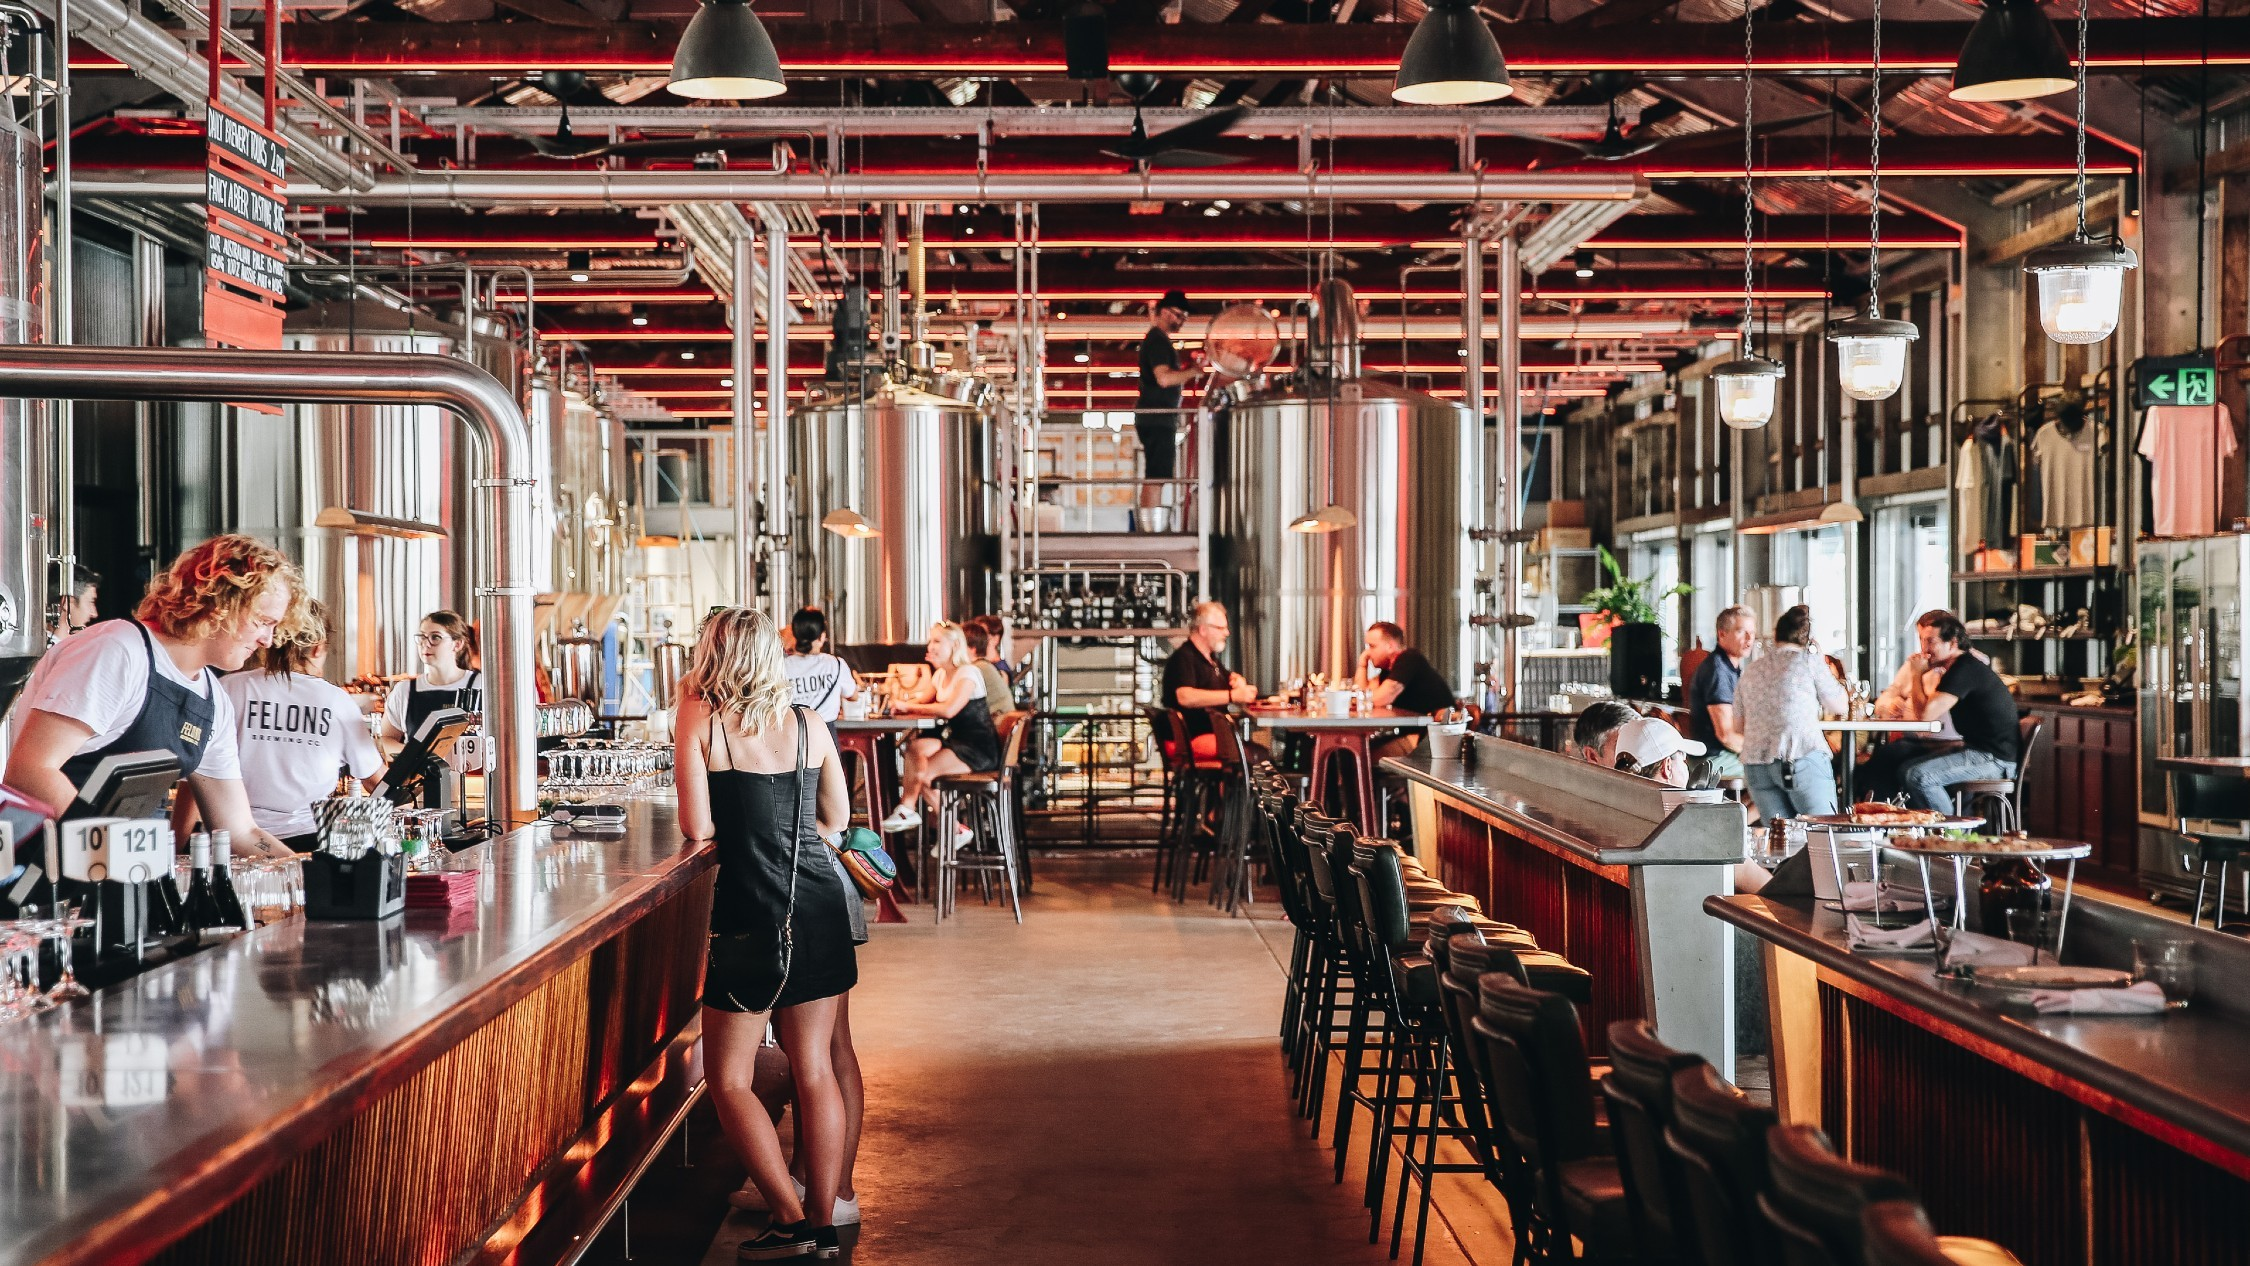 Felons Brewing Co beer hall in Brisbane